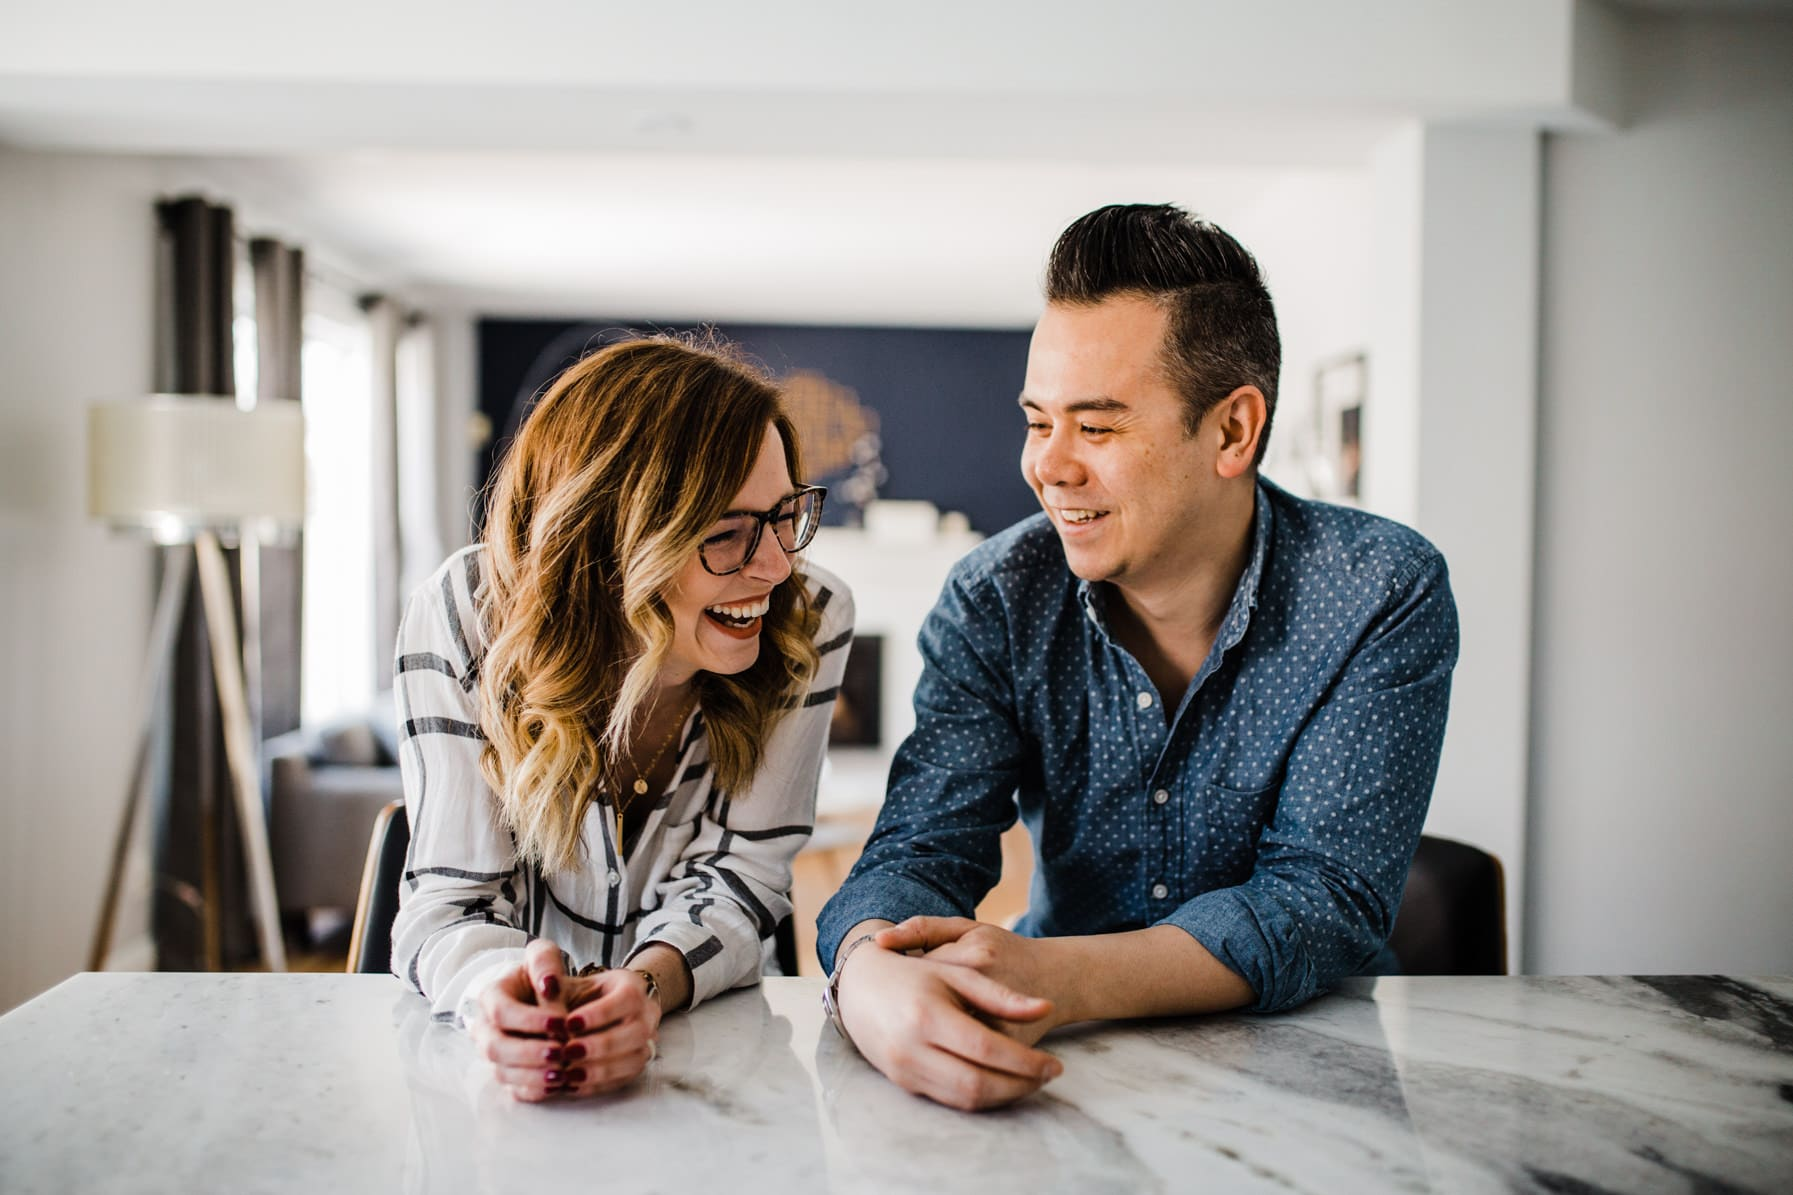 Couple laugh together in kitchen - Cozy At-Home Photos Lifestyle